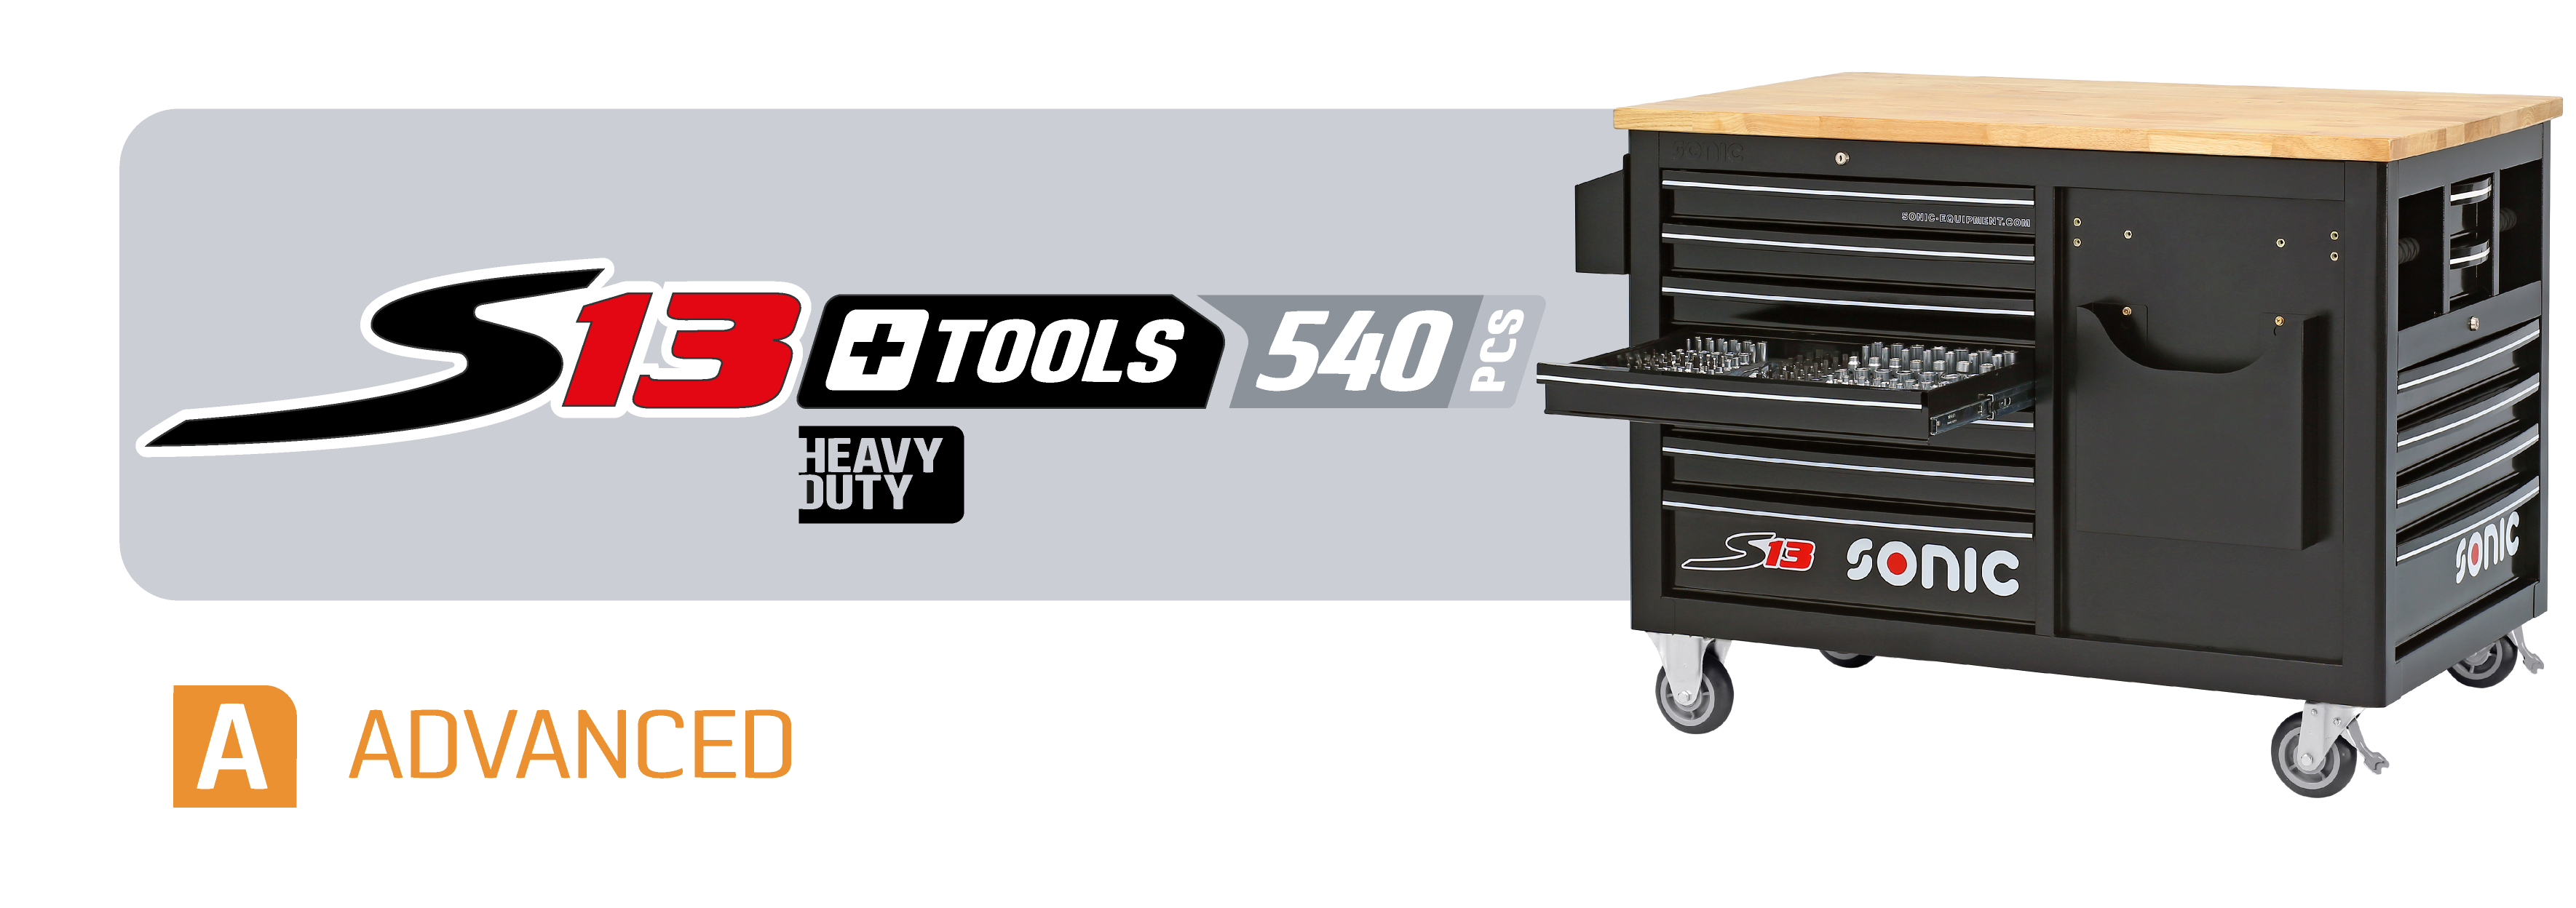 S13 toolbox with tools